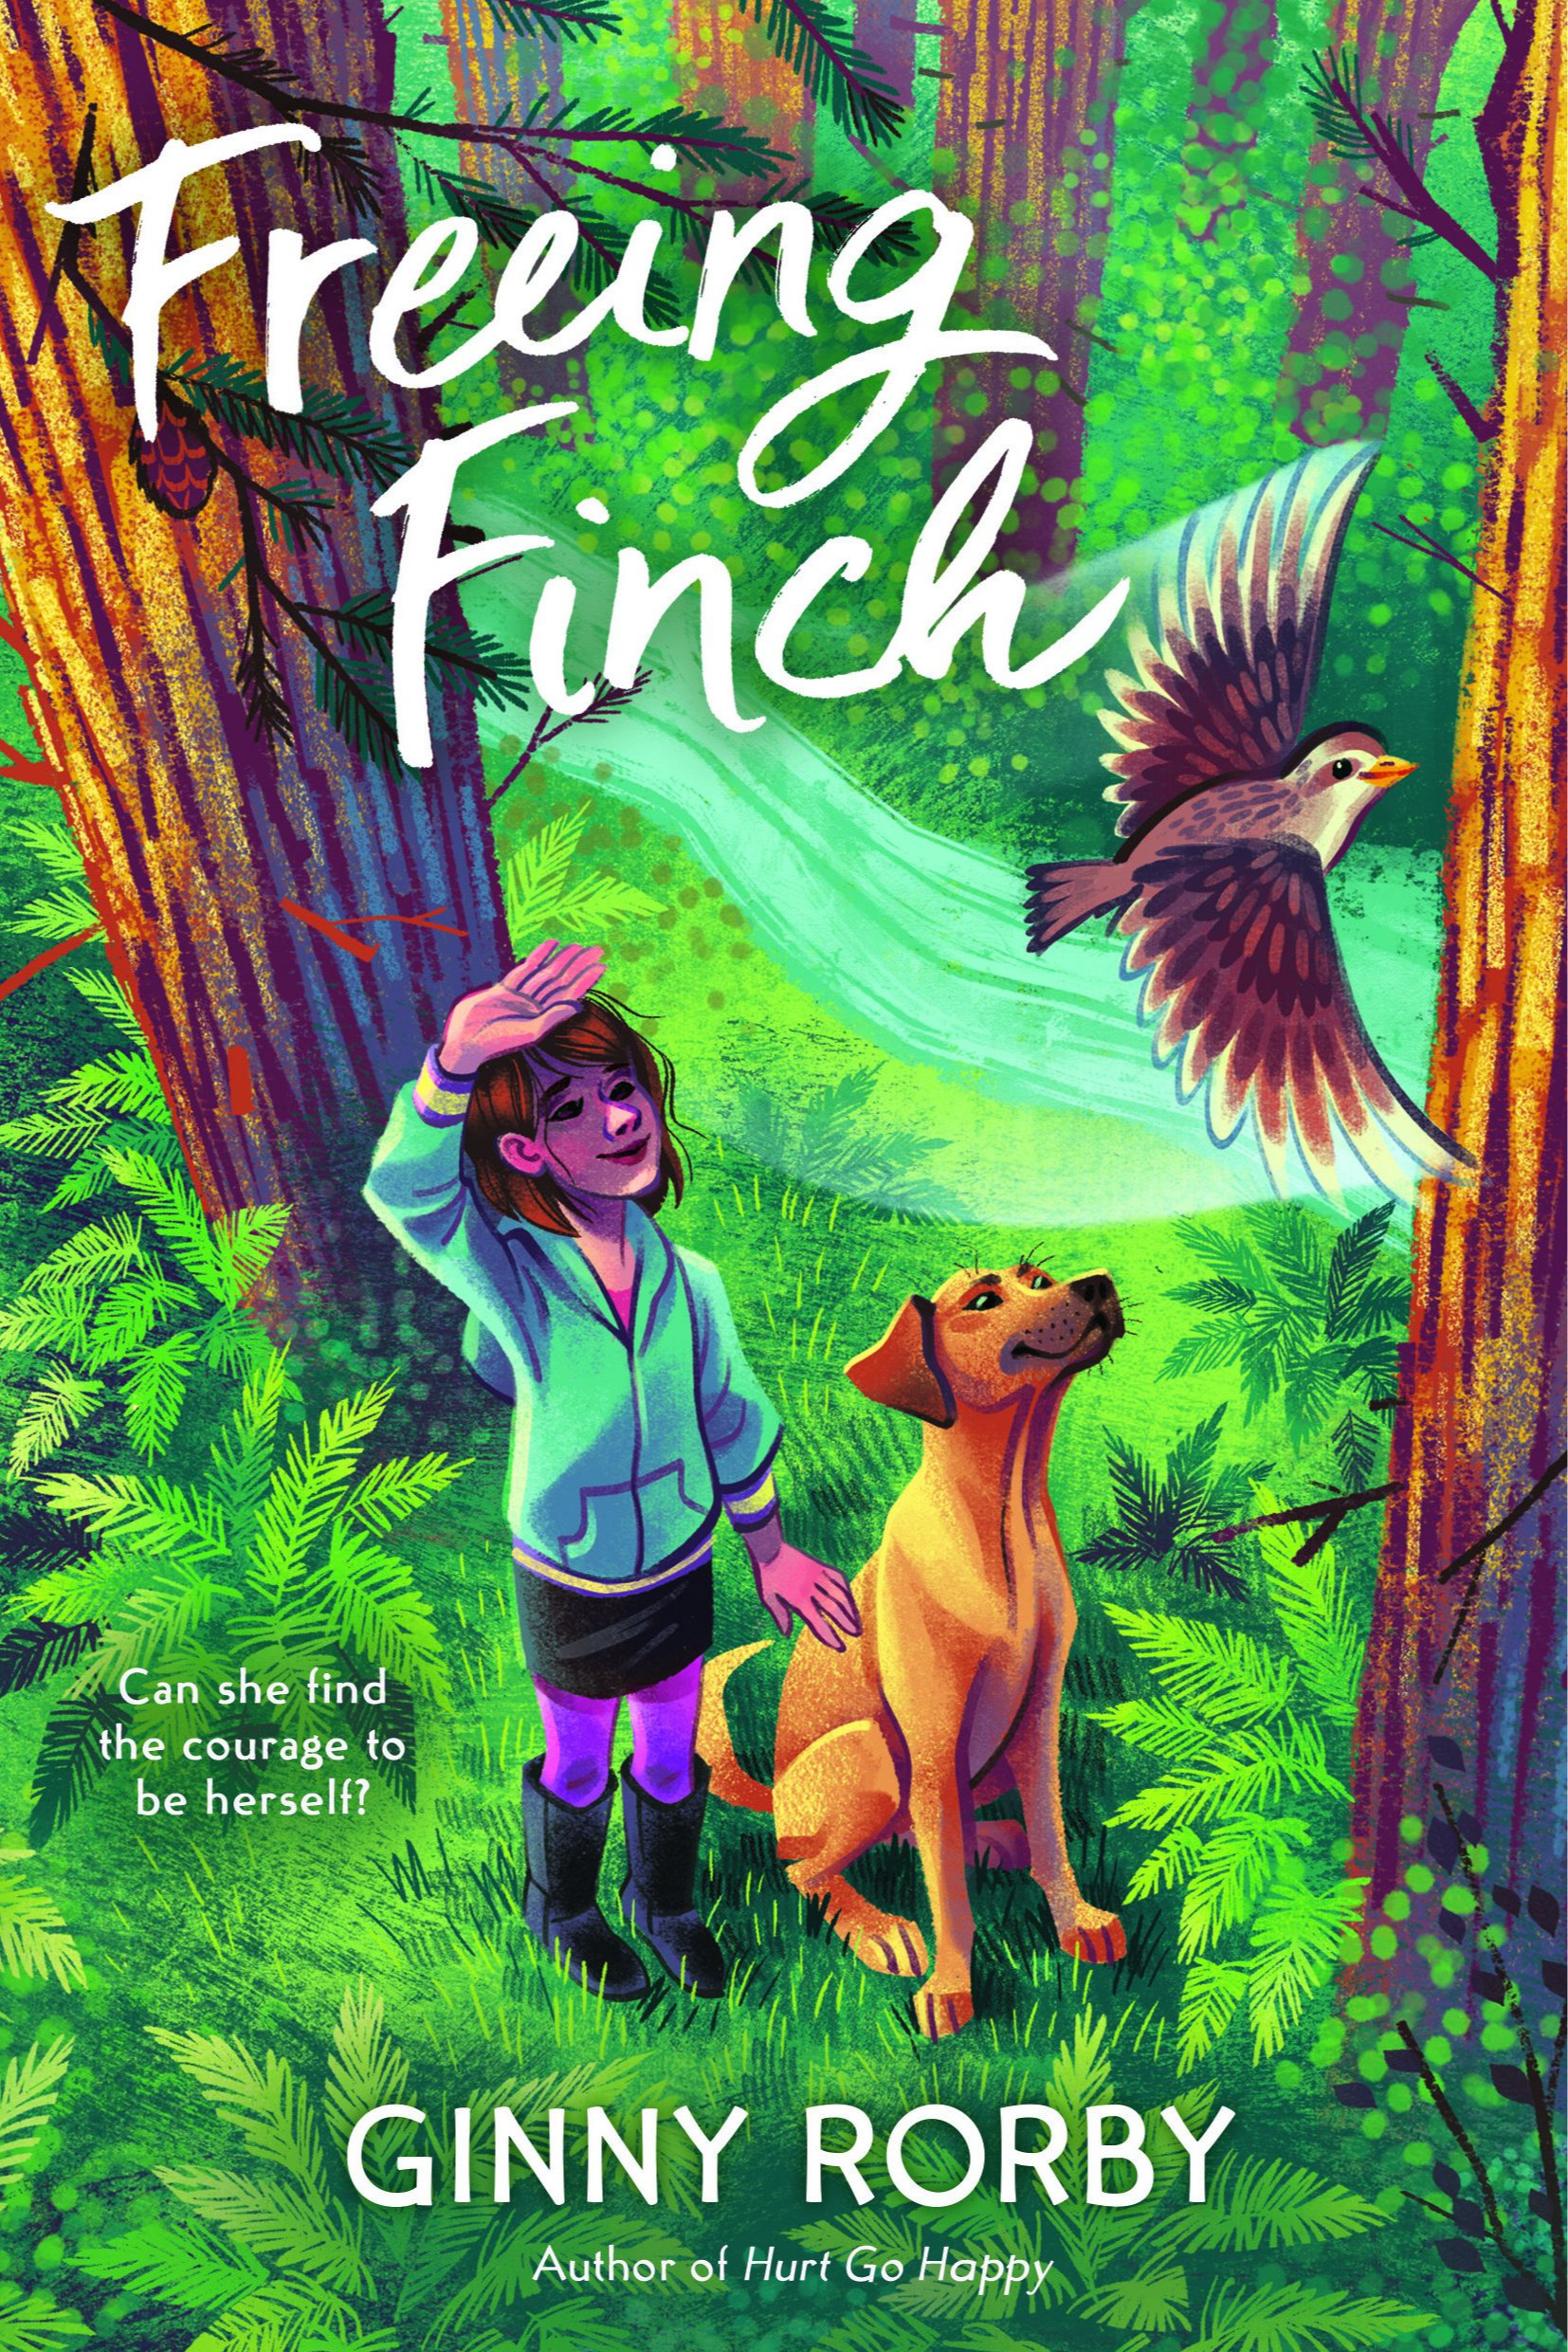 Freeing Finch   The effort it takes Finch Delgado, a transgender girl, to earn the trust of an abandoned dog, helps her realize what she wants—acceptance, love, and to be part of a family, doesn't always come from where you expect it.